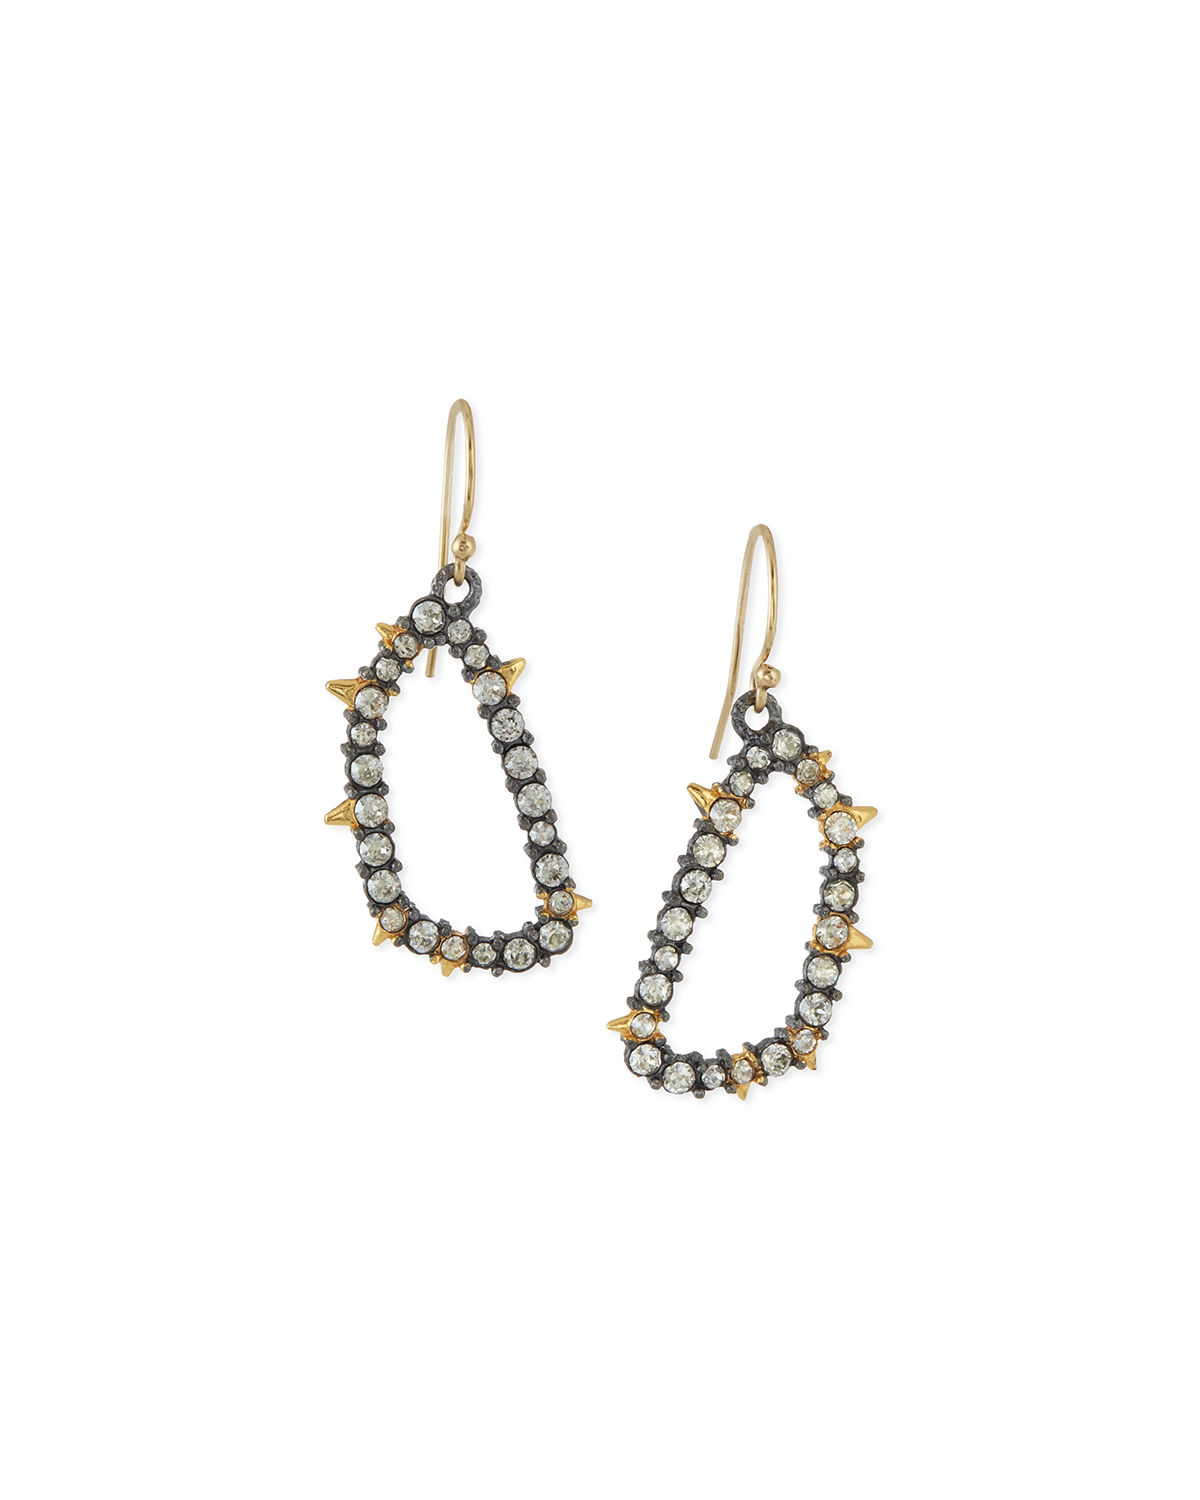 Elements Spiked Crystal Earrings